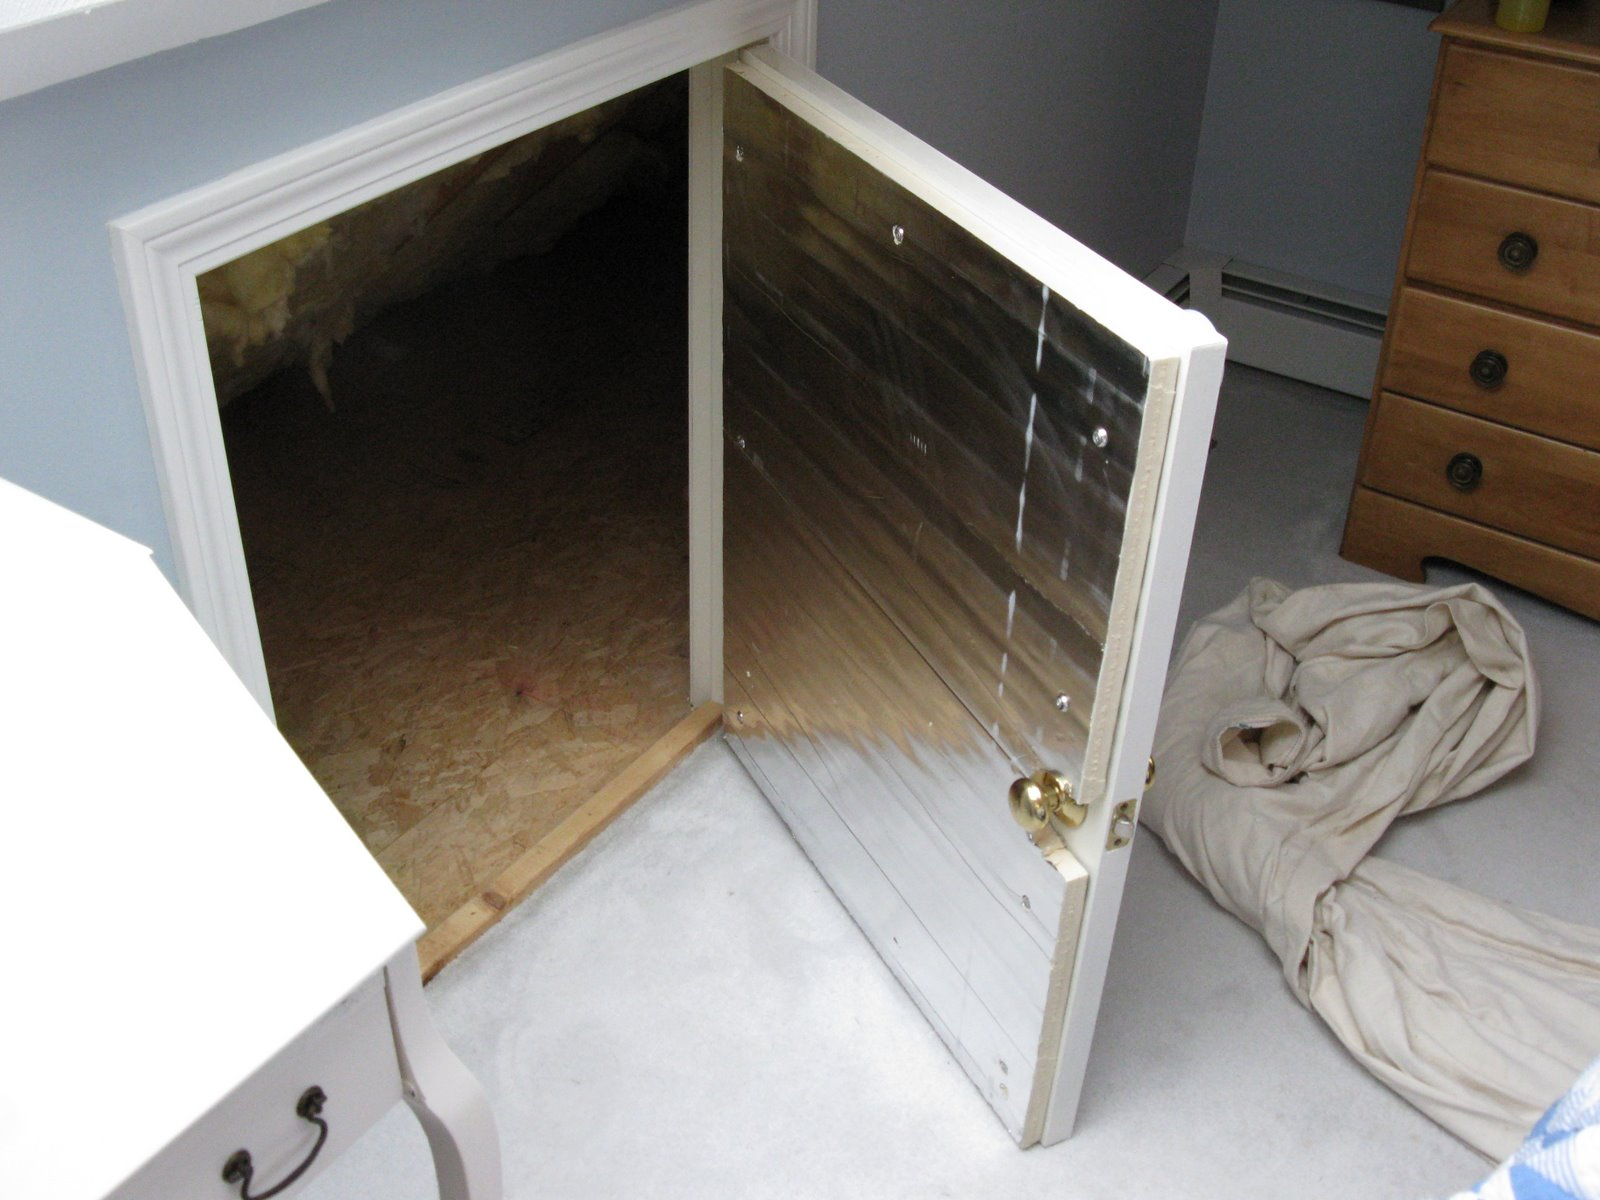 How to insulate a crawlspace door a concord carpenter for Exterior door insulation